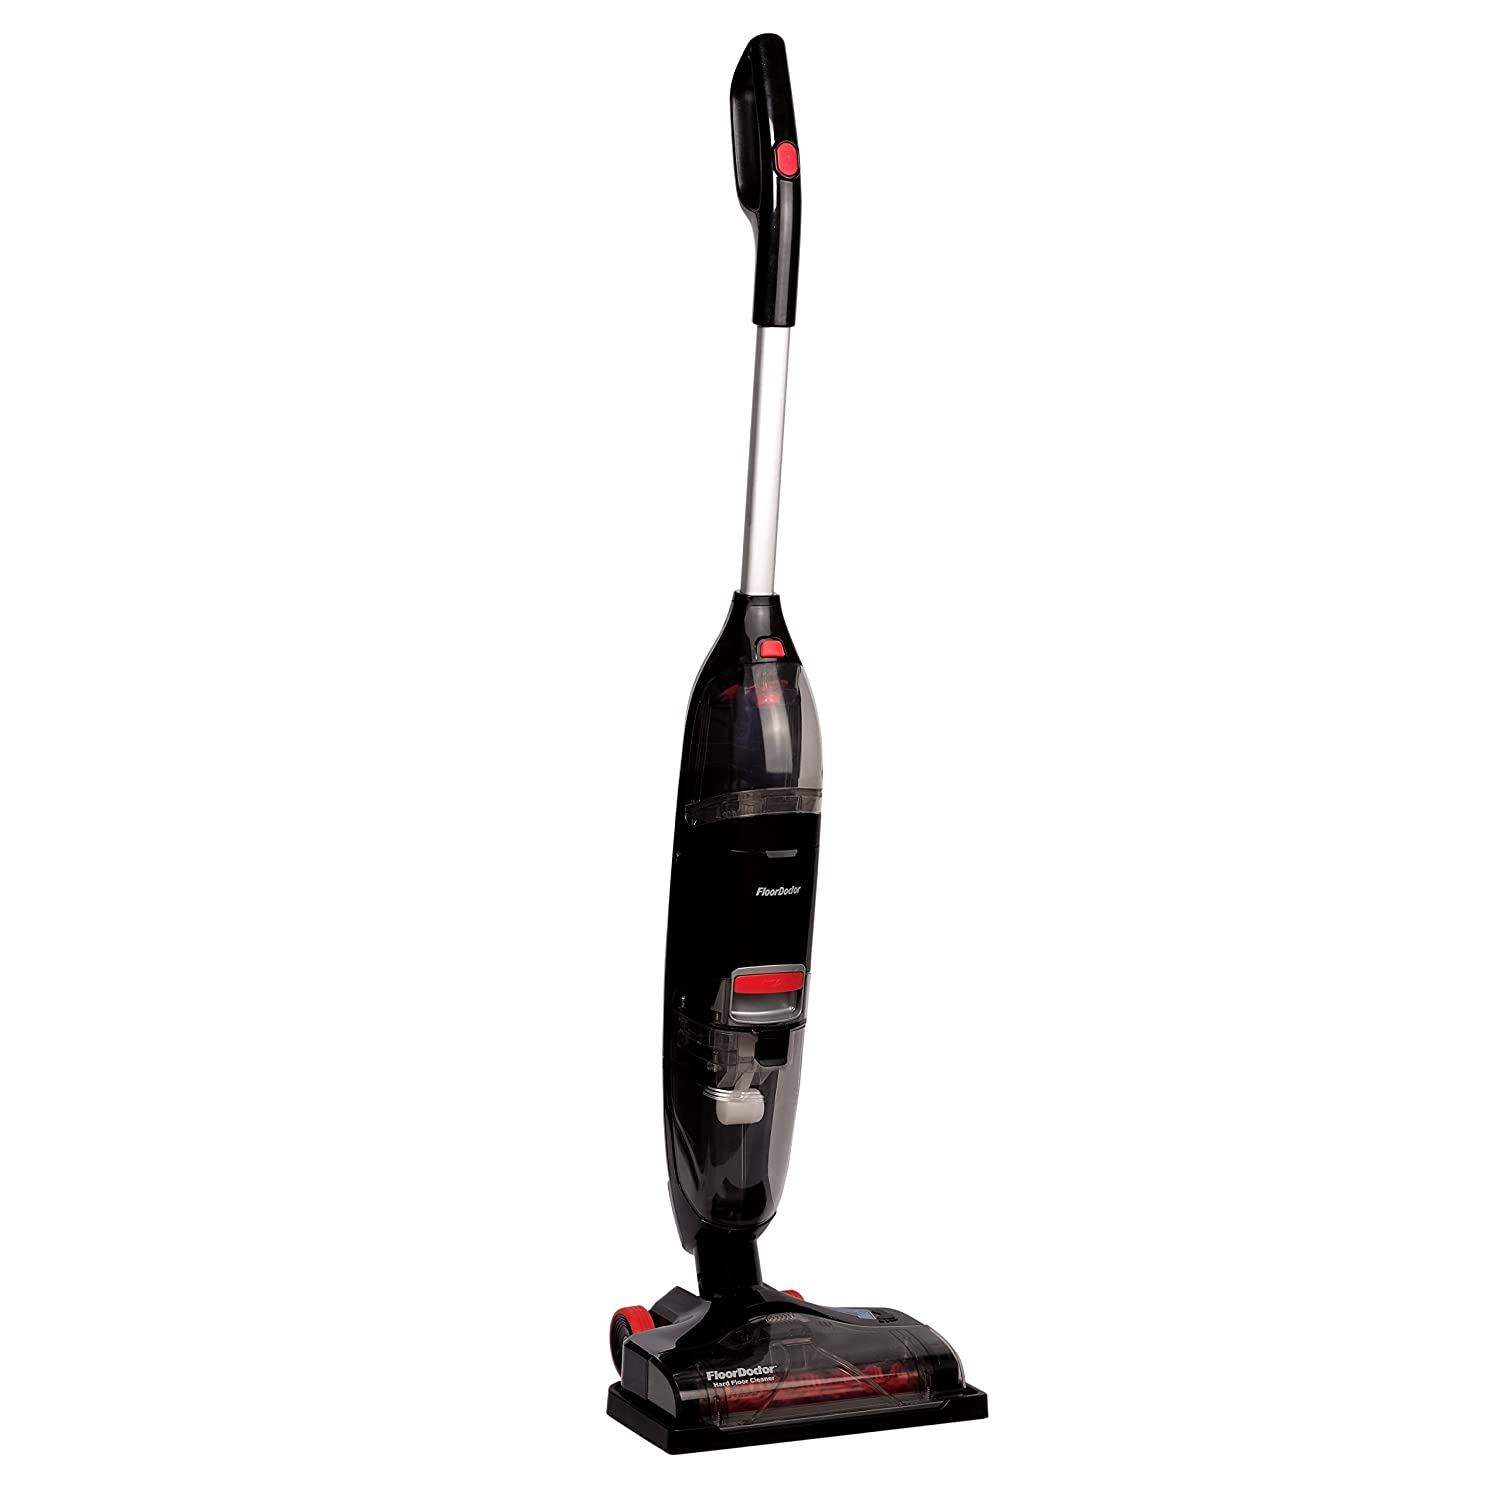 Floor Doctor Cleaner by Rug Doctor, Cordless Charging Dock, Tank Technology, Dual Modes, Extracts Spills and Stains, Polishes and Cleans Sealed Hard Floors Makes Perfect, Gray